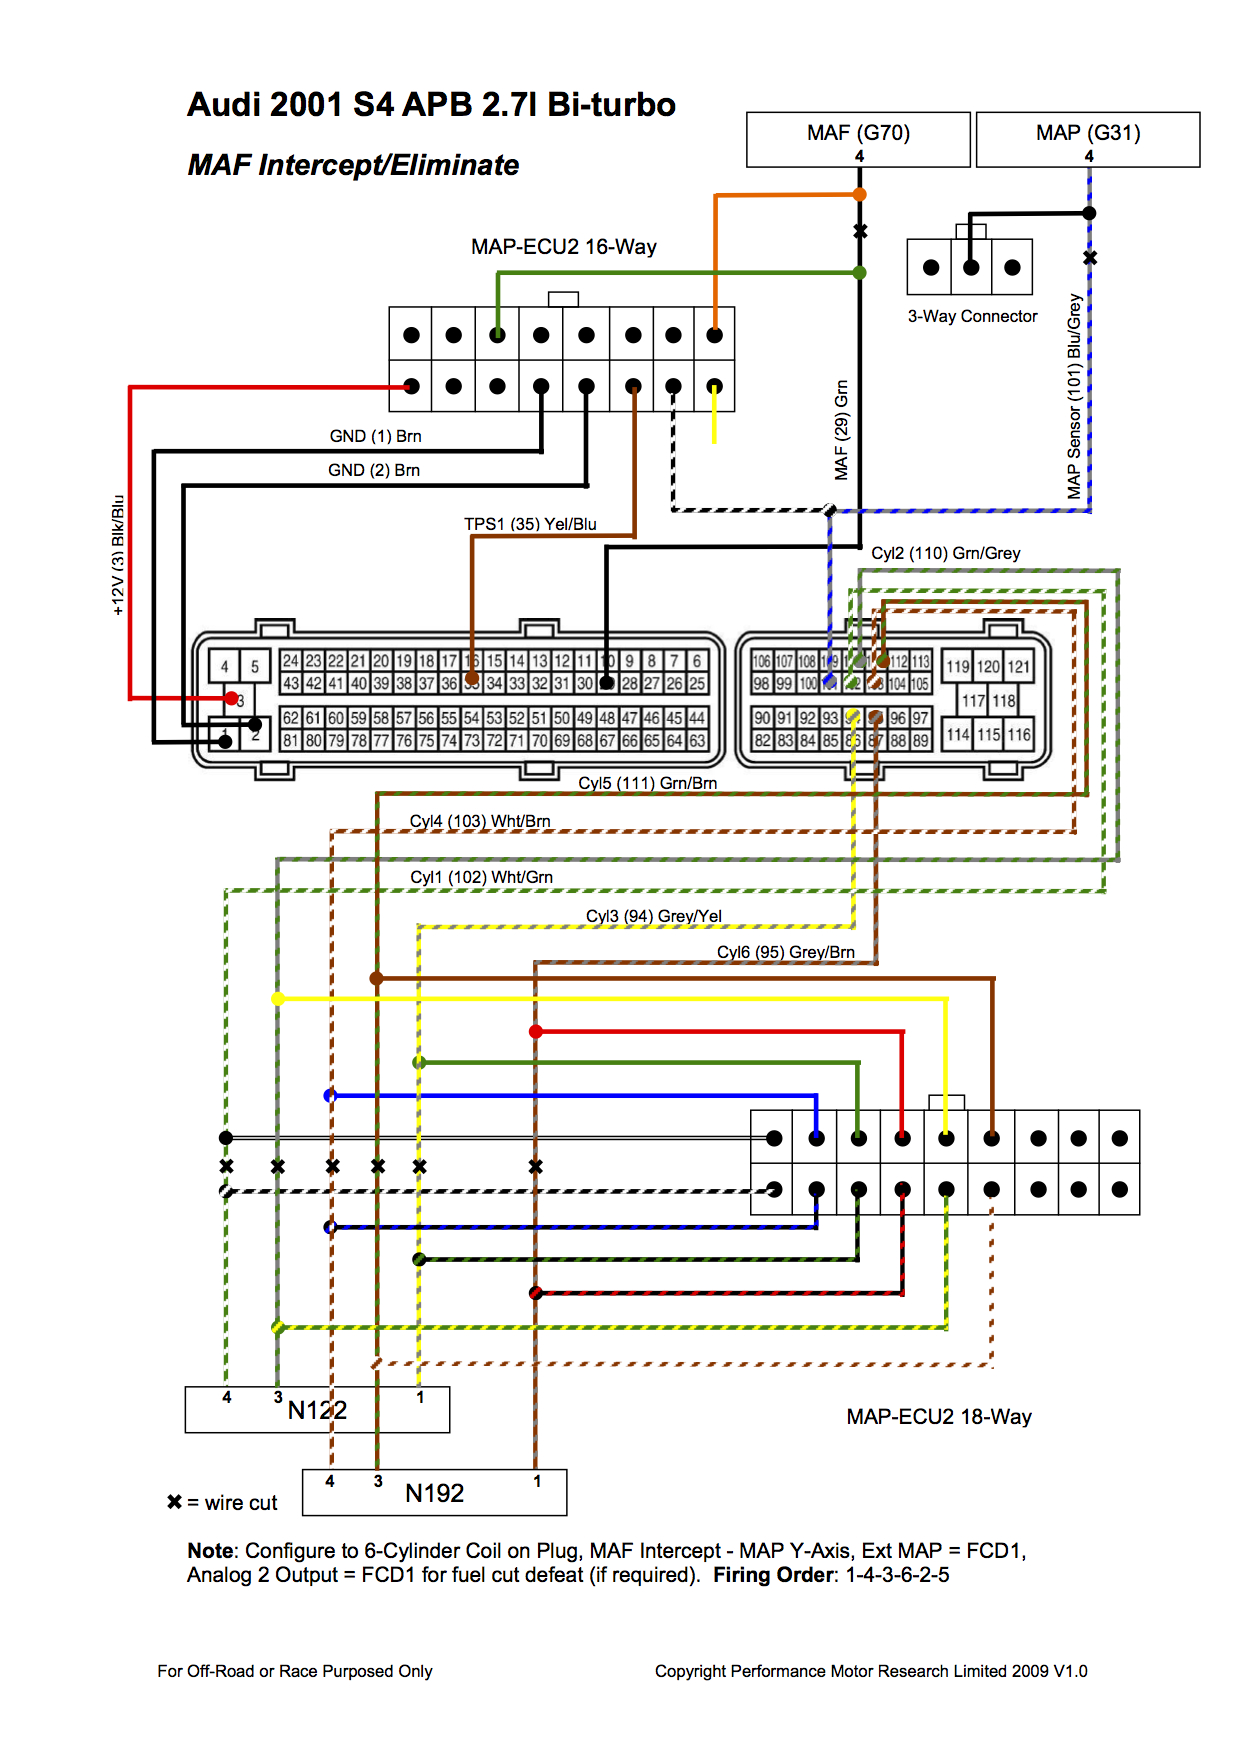 99 Ls400 Fuse Diagram Not Lossing Wiring Vip Schematic Further 1990 Lexus As Well Data Rh 39 Diehoehle Derloewen De Enginwe